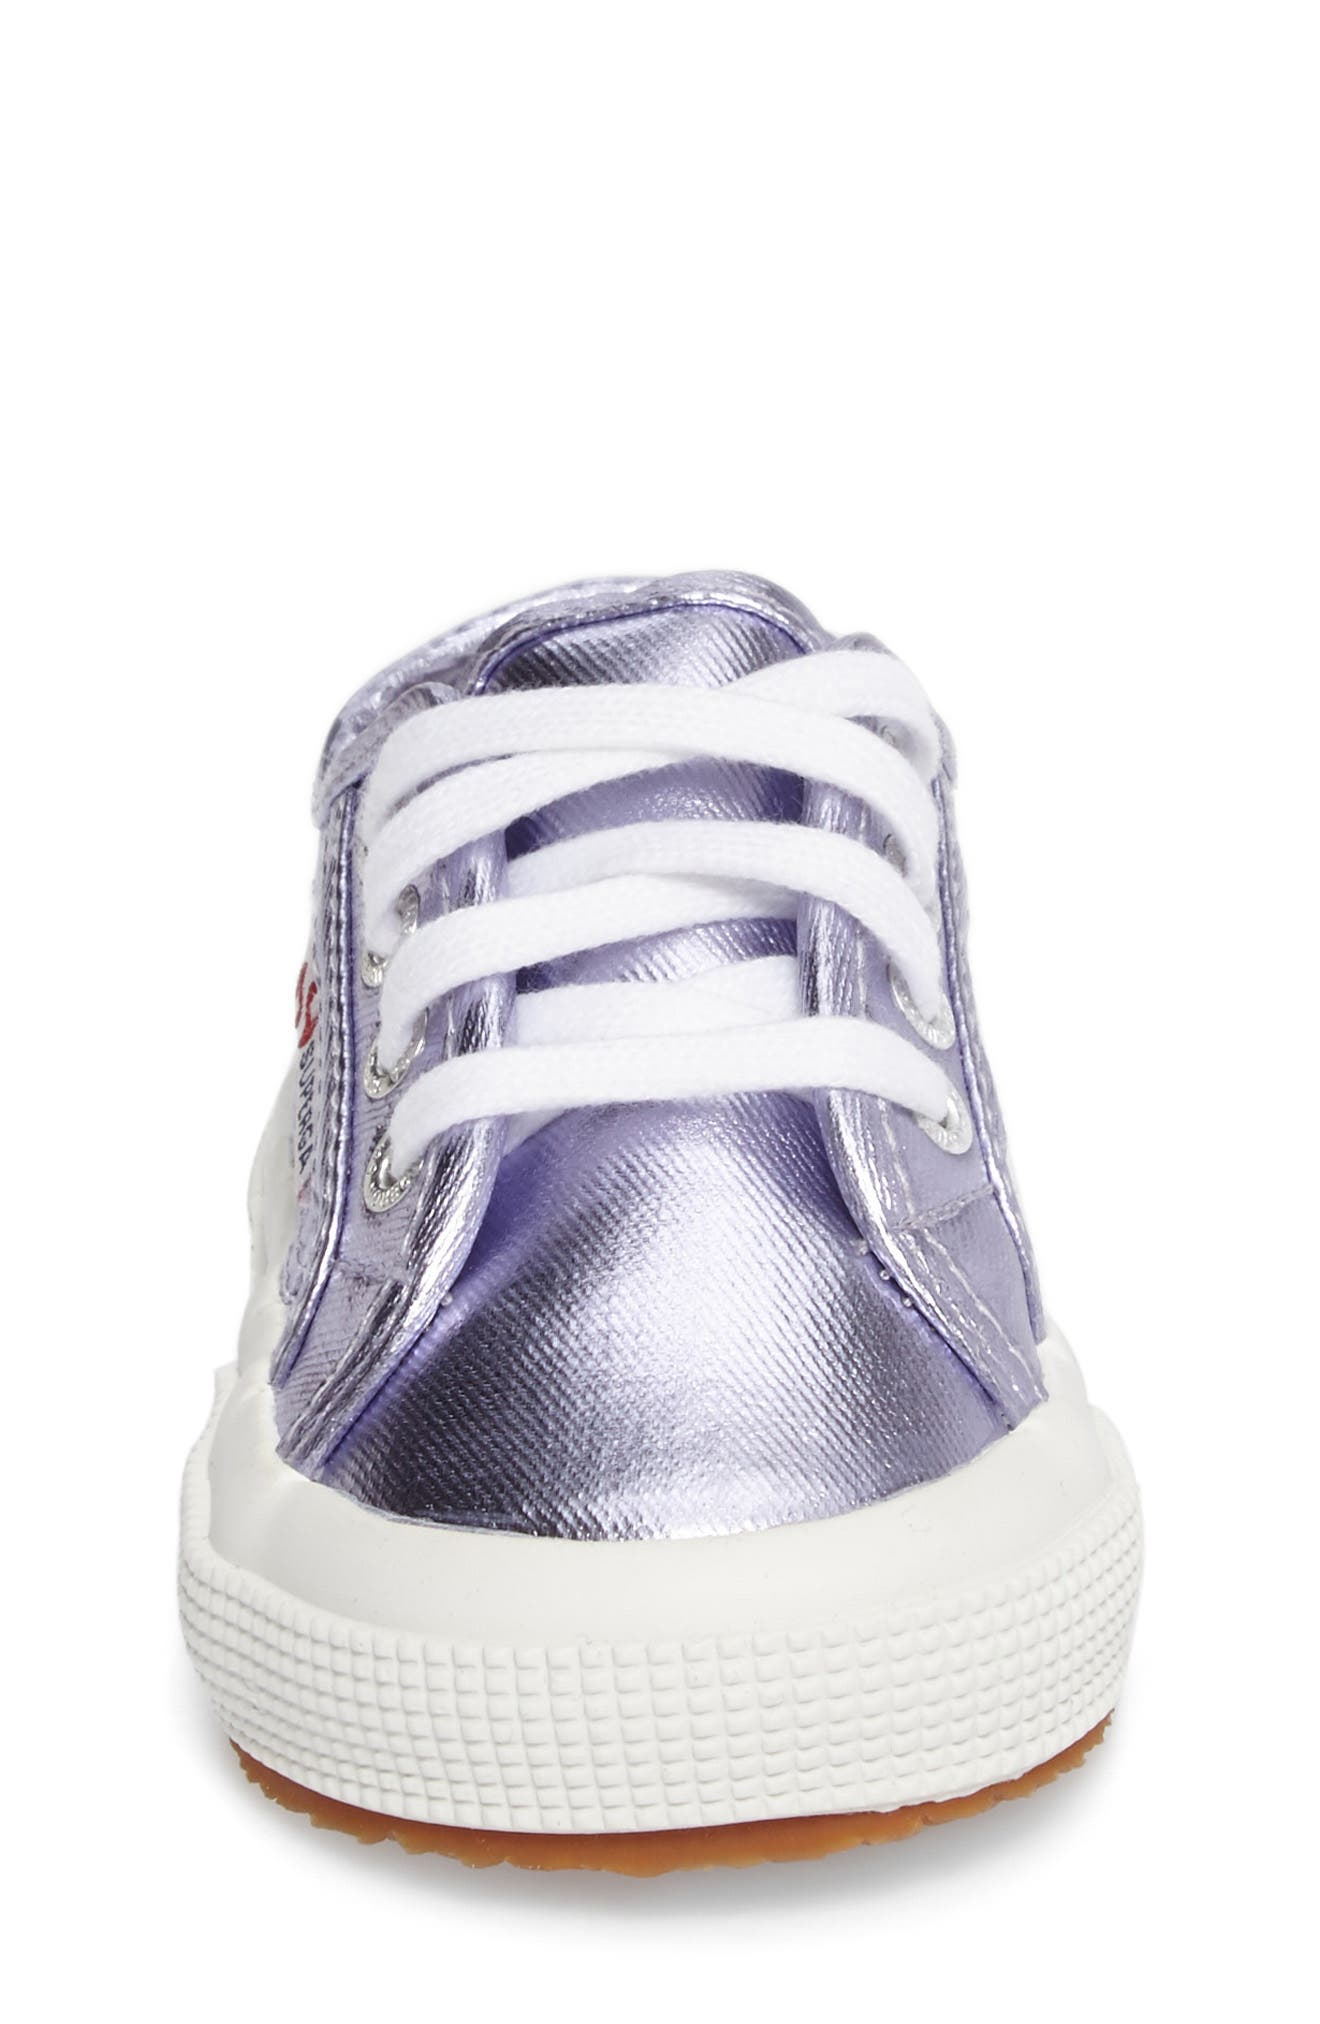 Metallic Sneaker,                             Alternate thumbnail 4, color,                             Orchid